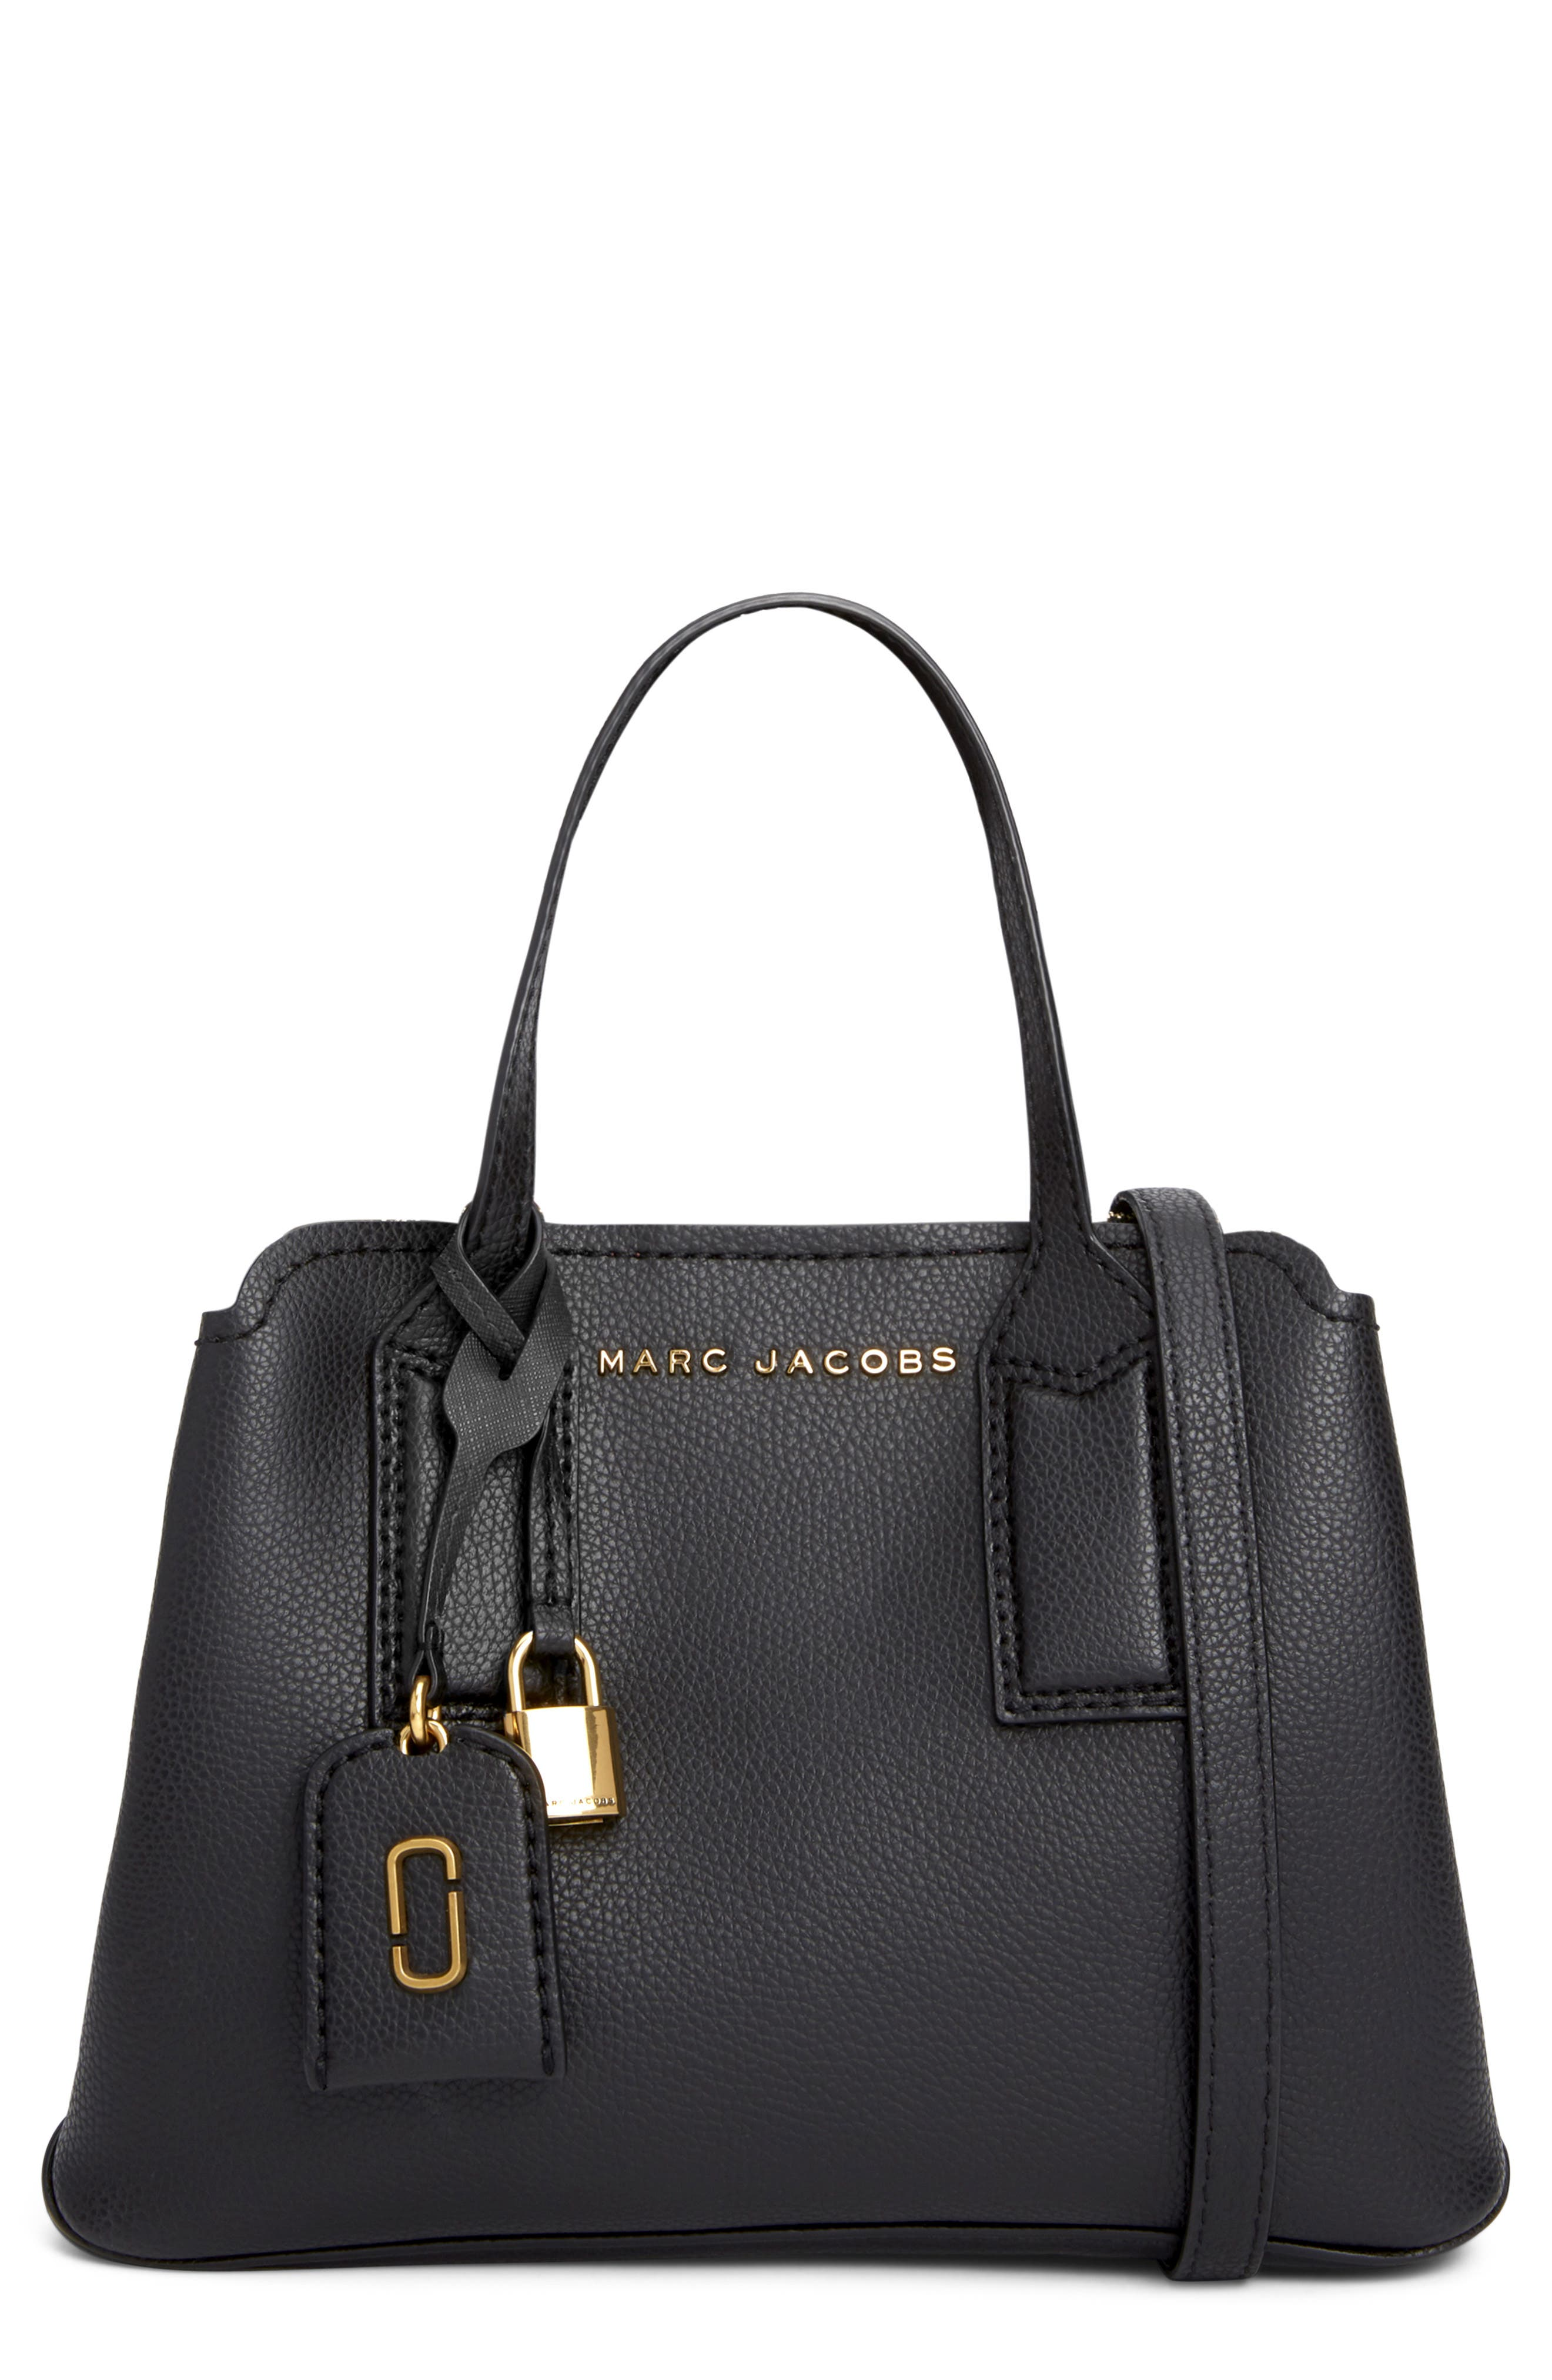 MARC JACOBS The Editor 29 Leather Crossbody Bag, Main, color, BLACK